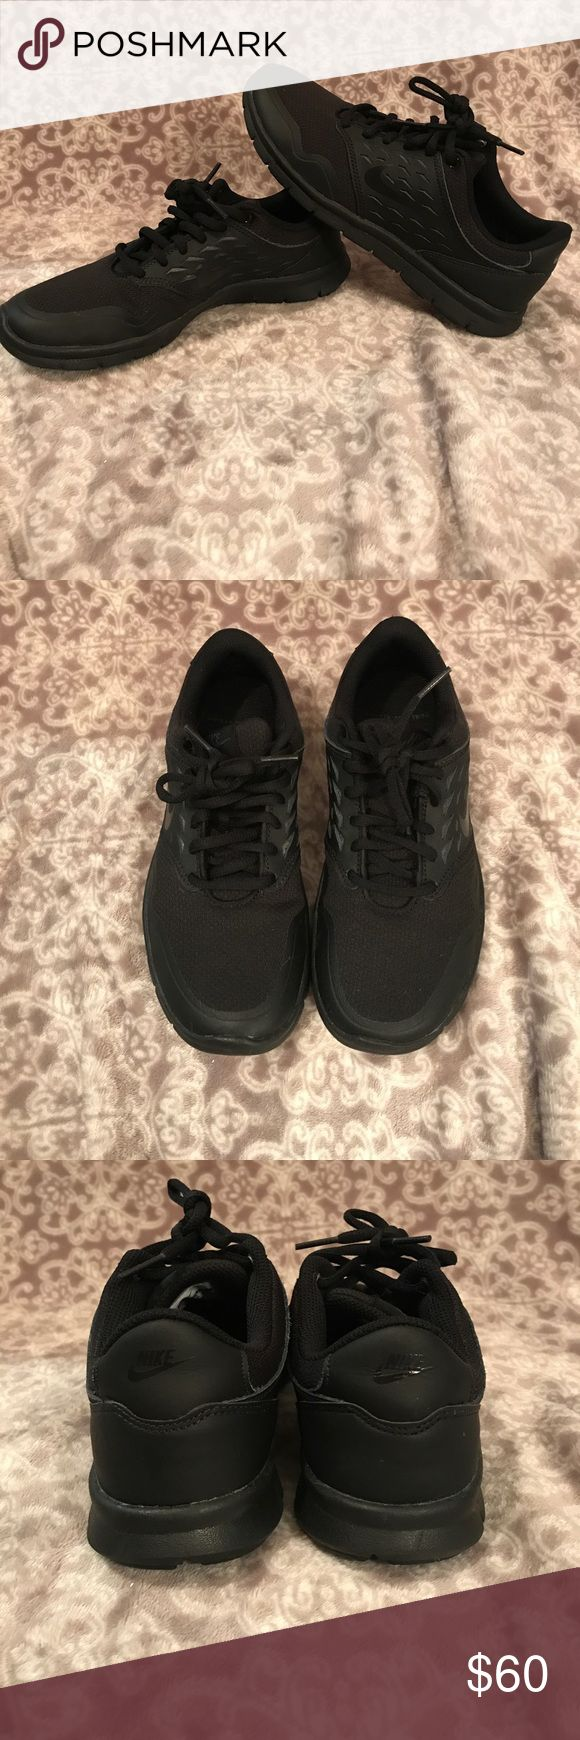 Nike Cross-Trainers size 6.5 Nike size 6.5 black-on-black cross-trainers! Only been worn a couple of times, and never outside. Only inside of a gym. Price is firm😘 Nike Shoes Athletic Shoes